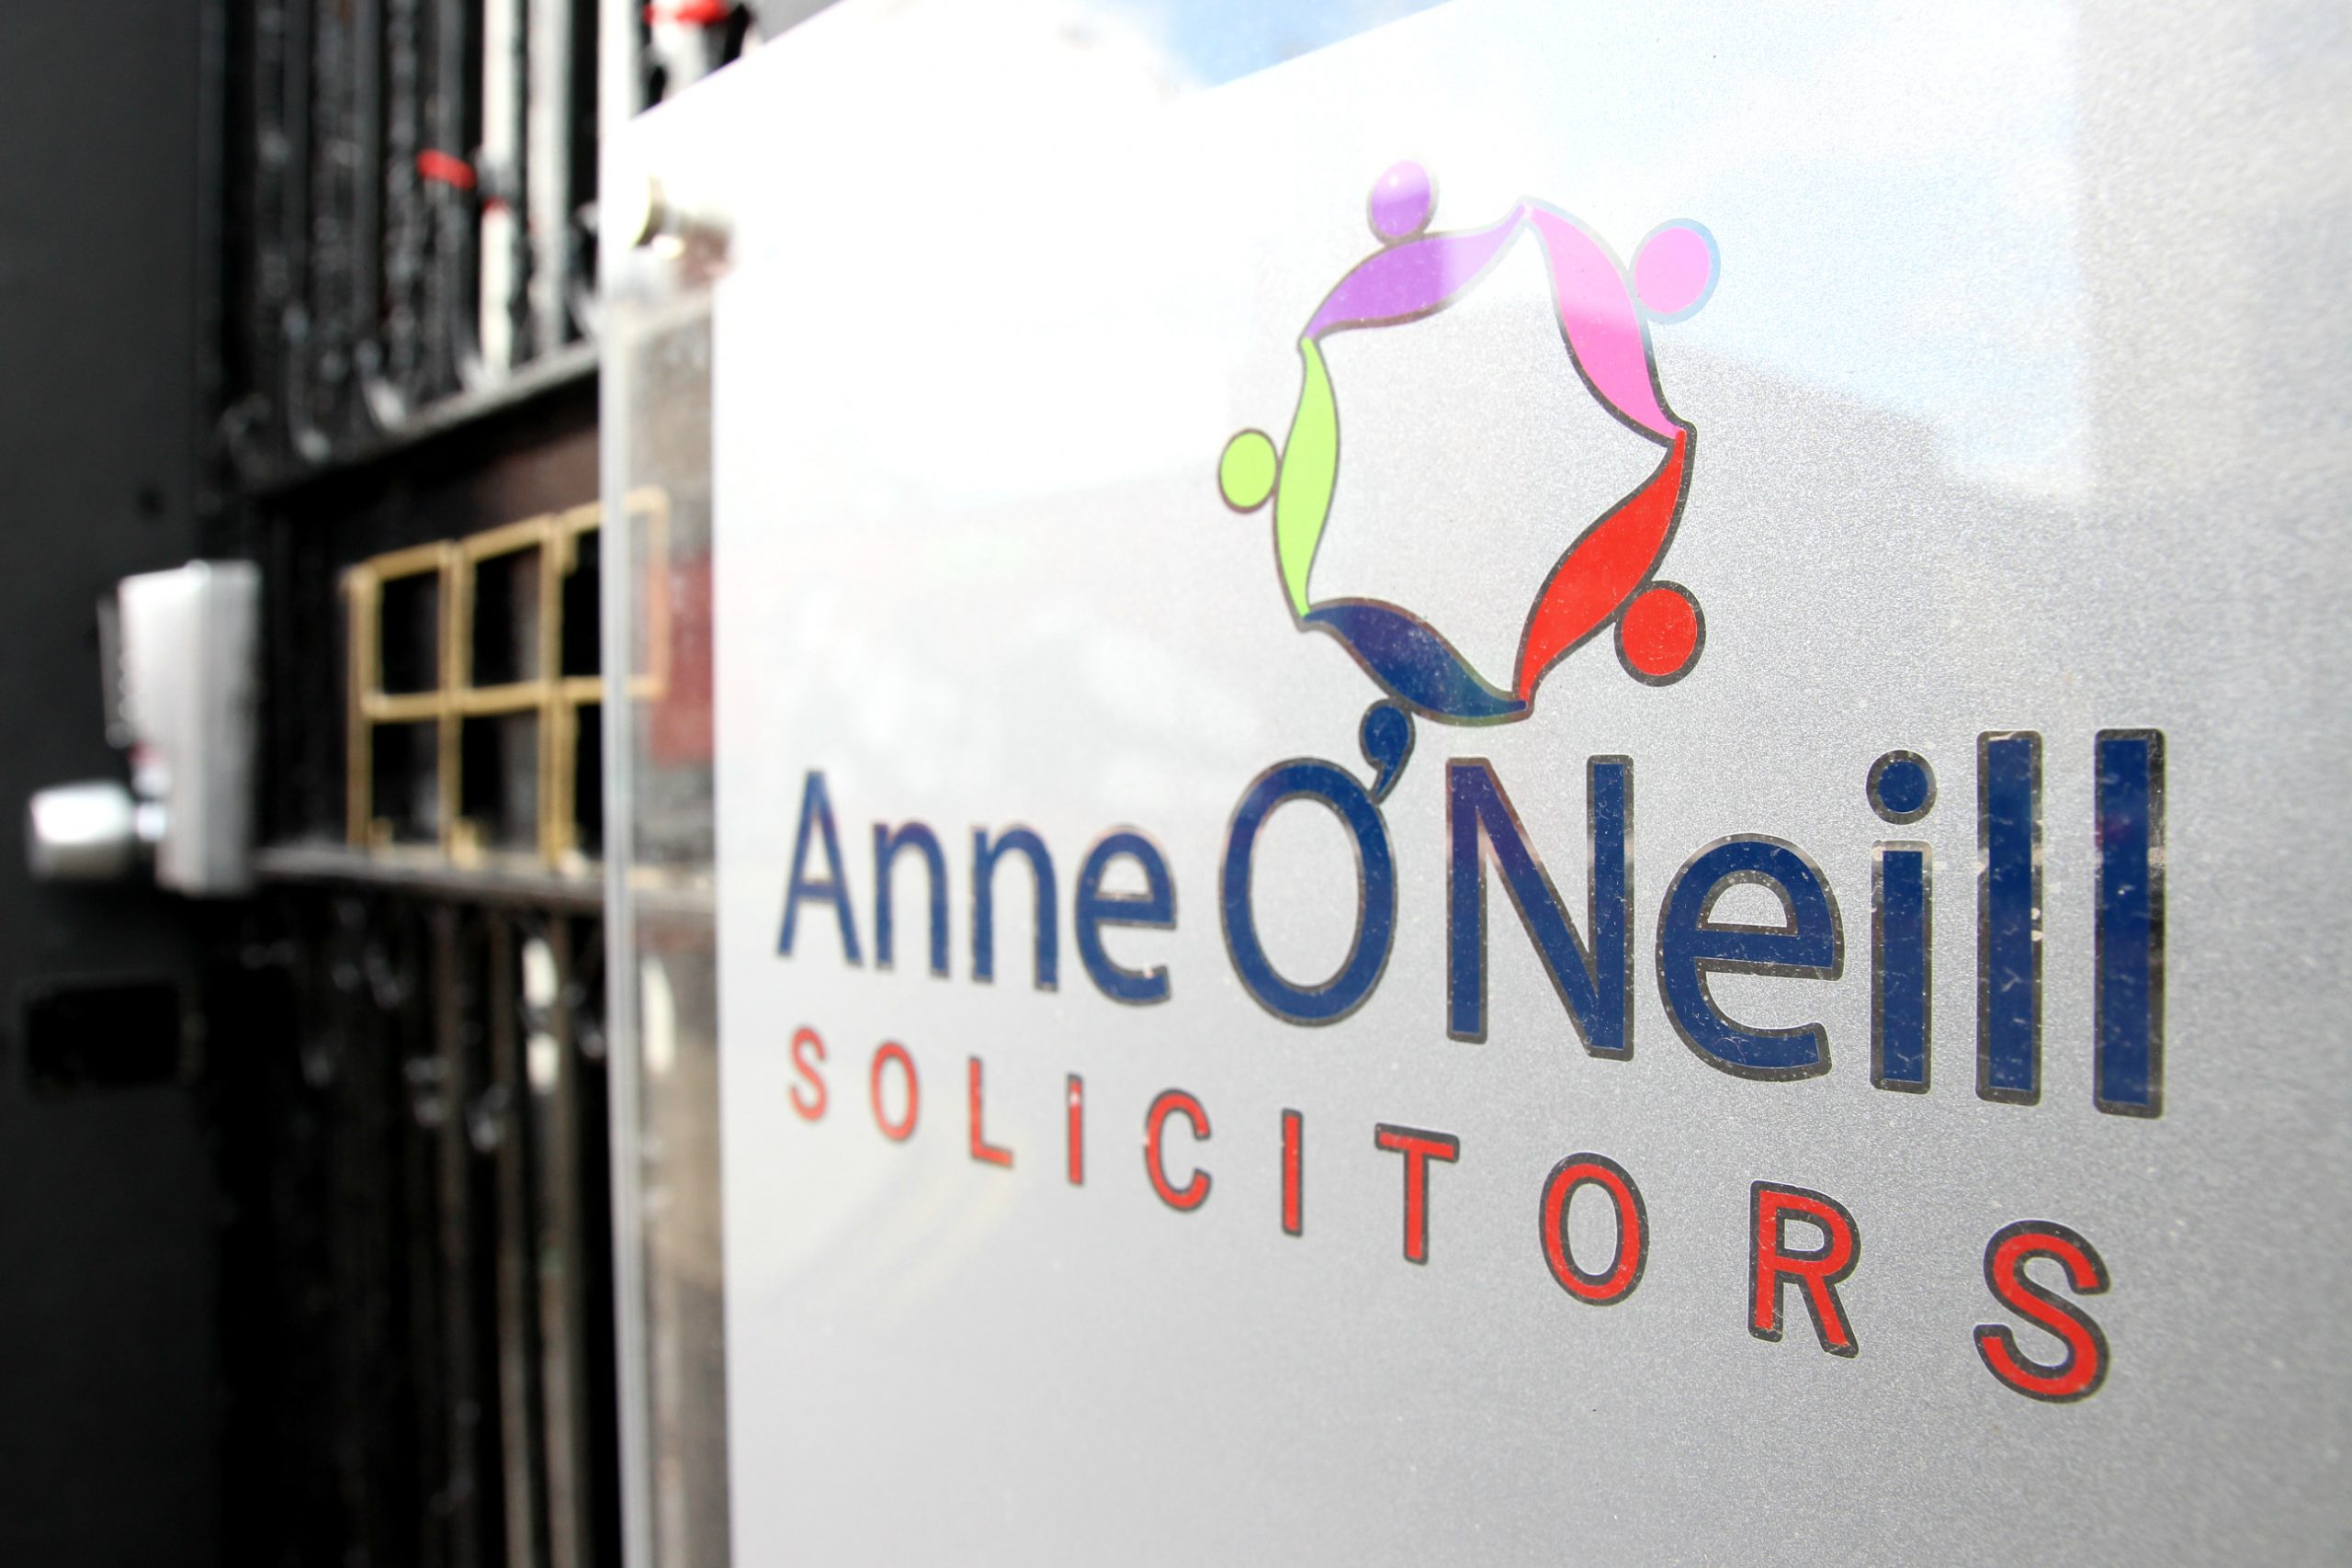 Sign of Anne O'Neill Solicitors